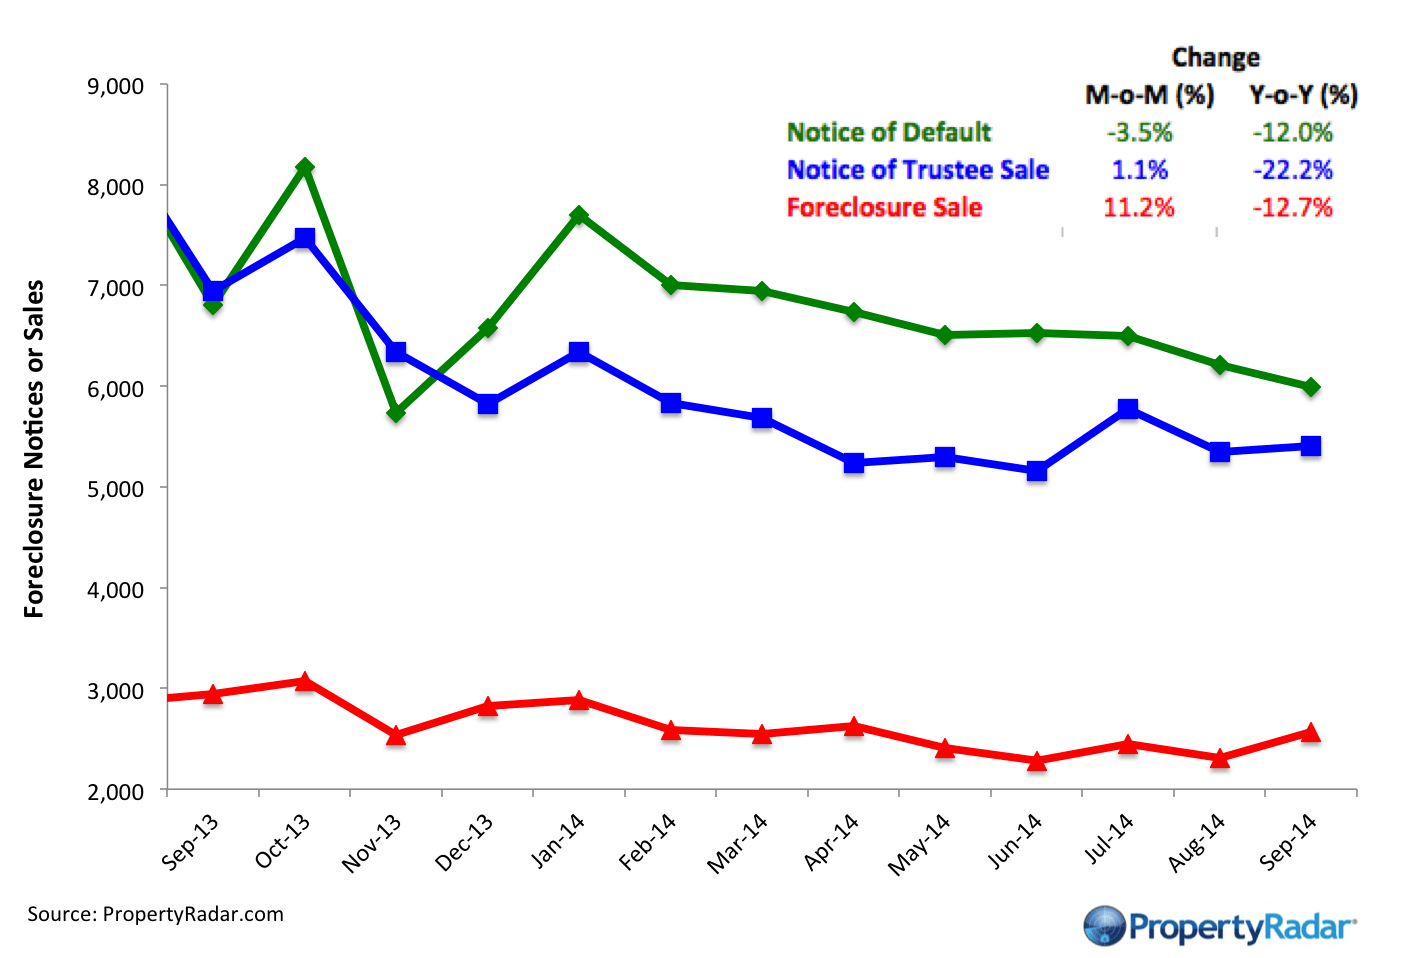 California August foreclosure sales fell 5.5 percent from July. Despite August's decline, foreclosure sales have been trending mostly sideways since May.